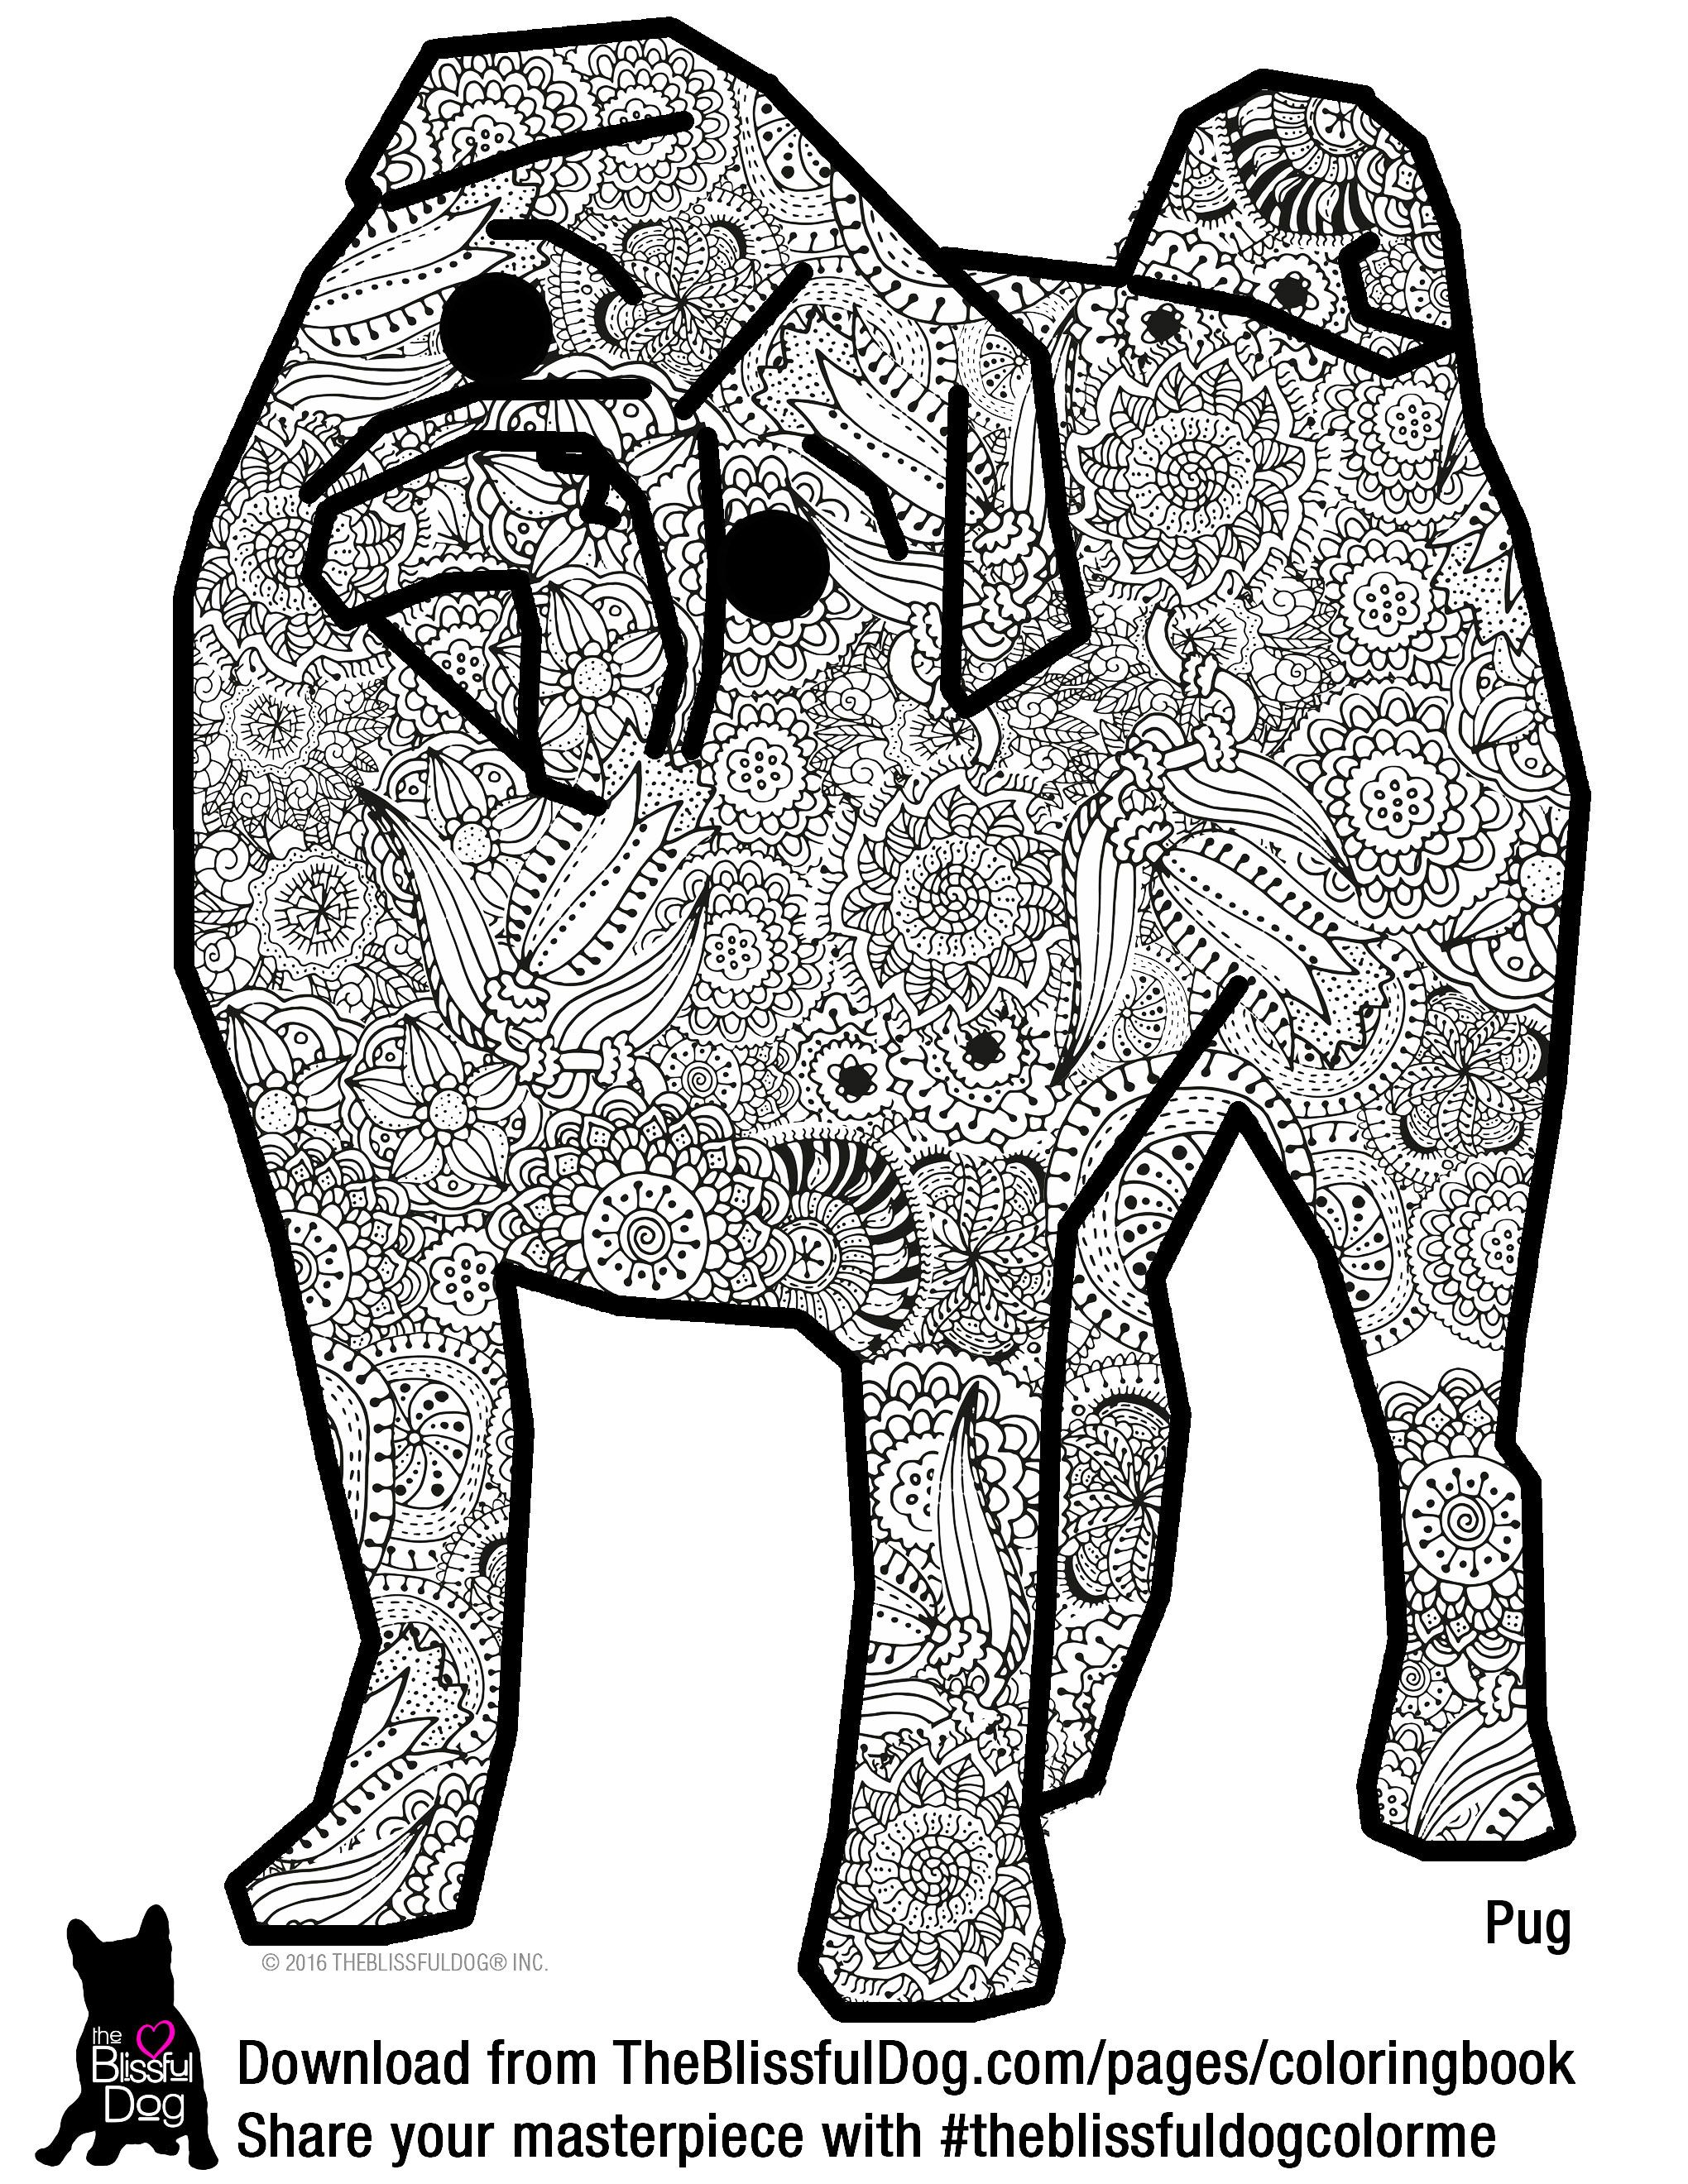 Enjoy coloring this blissful Pug! | A-COLORING BOOK PAGES ...